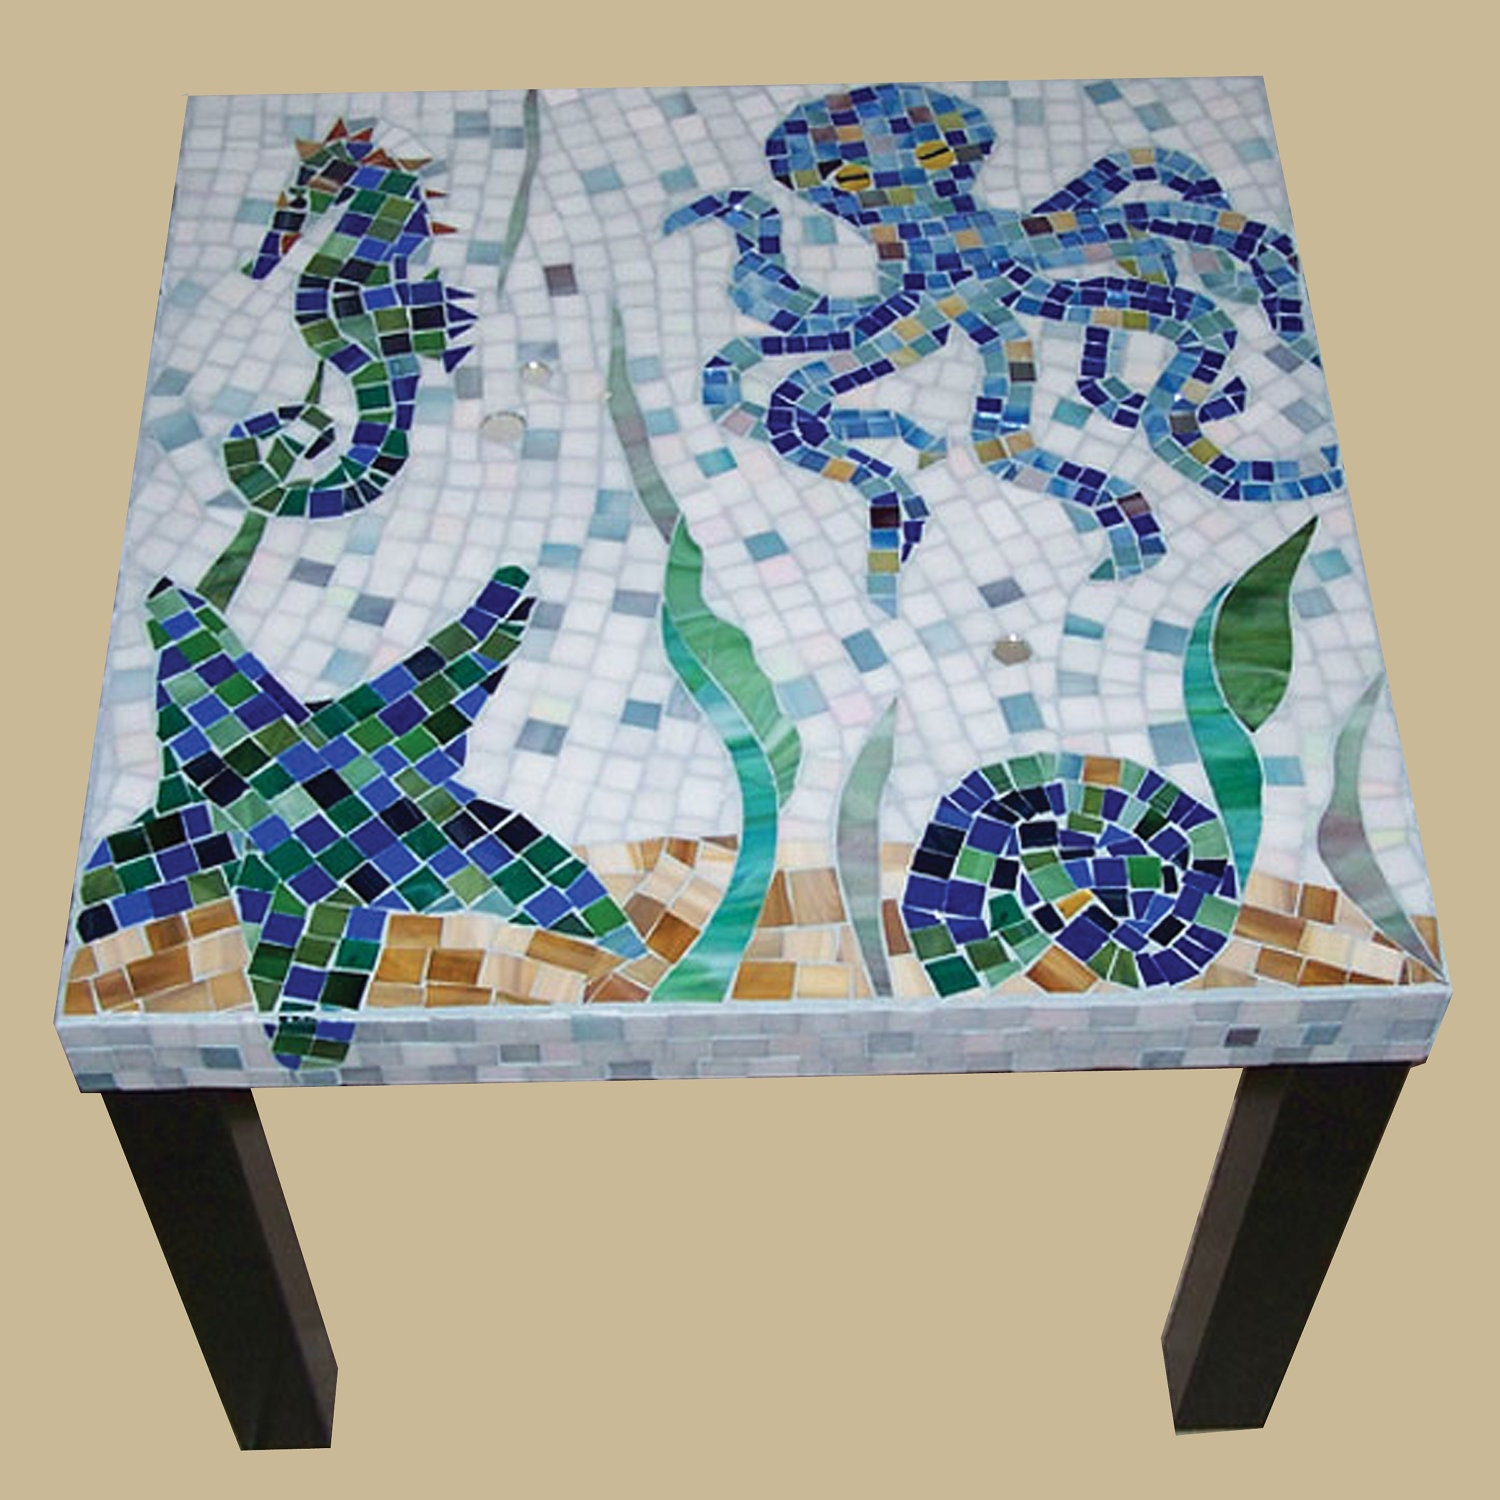 Handmade Sea Creatures Glass Mosaic Side TableOn SALE NOW